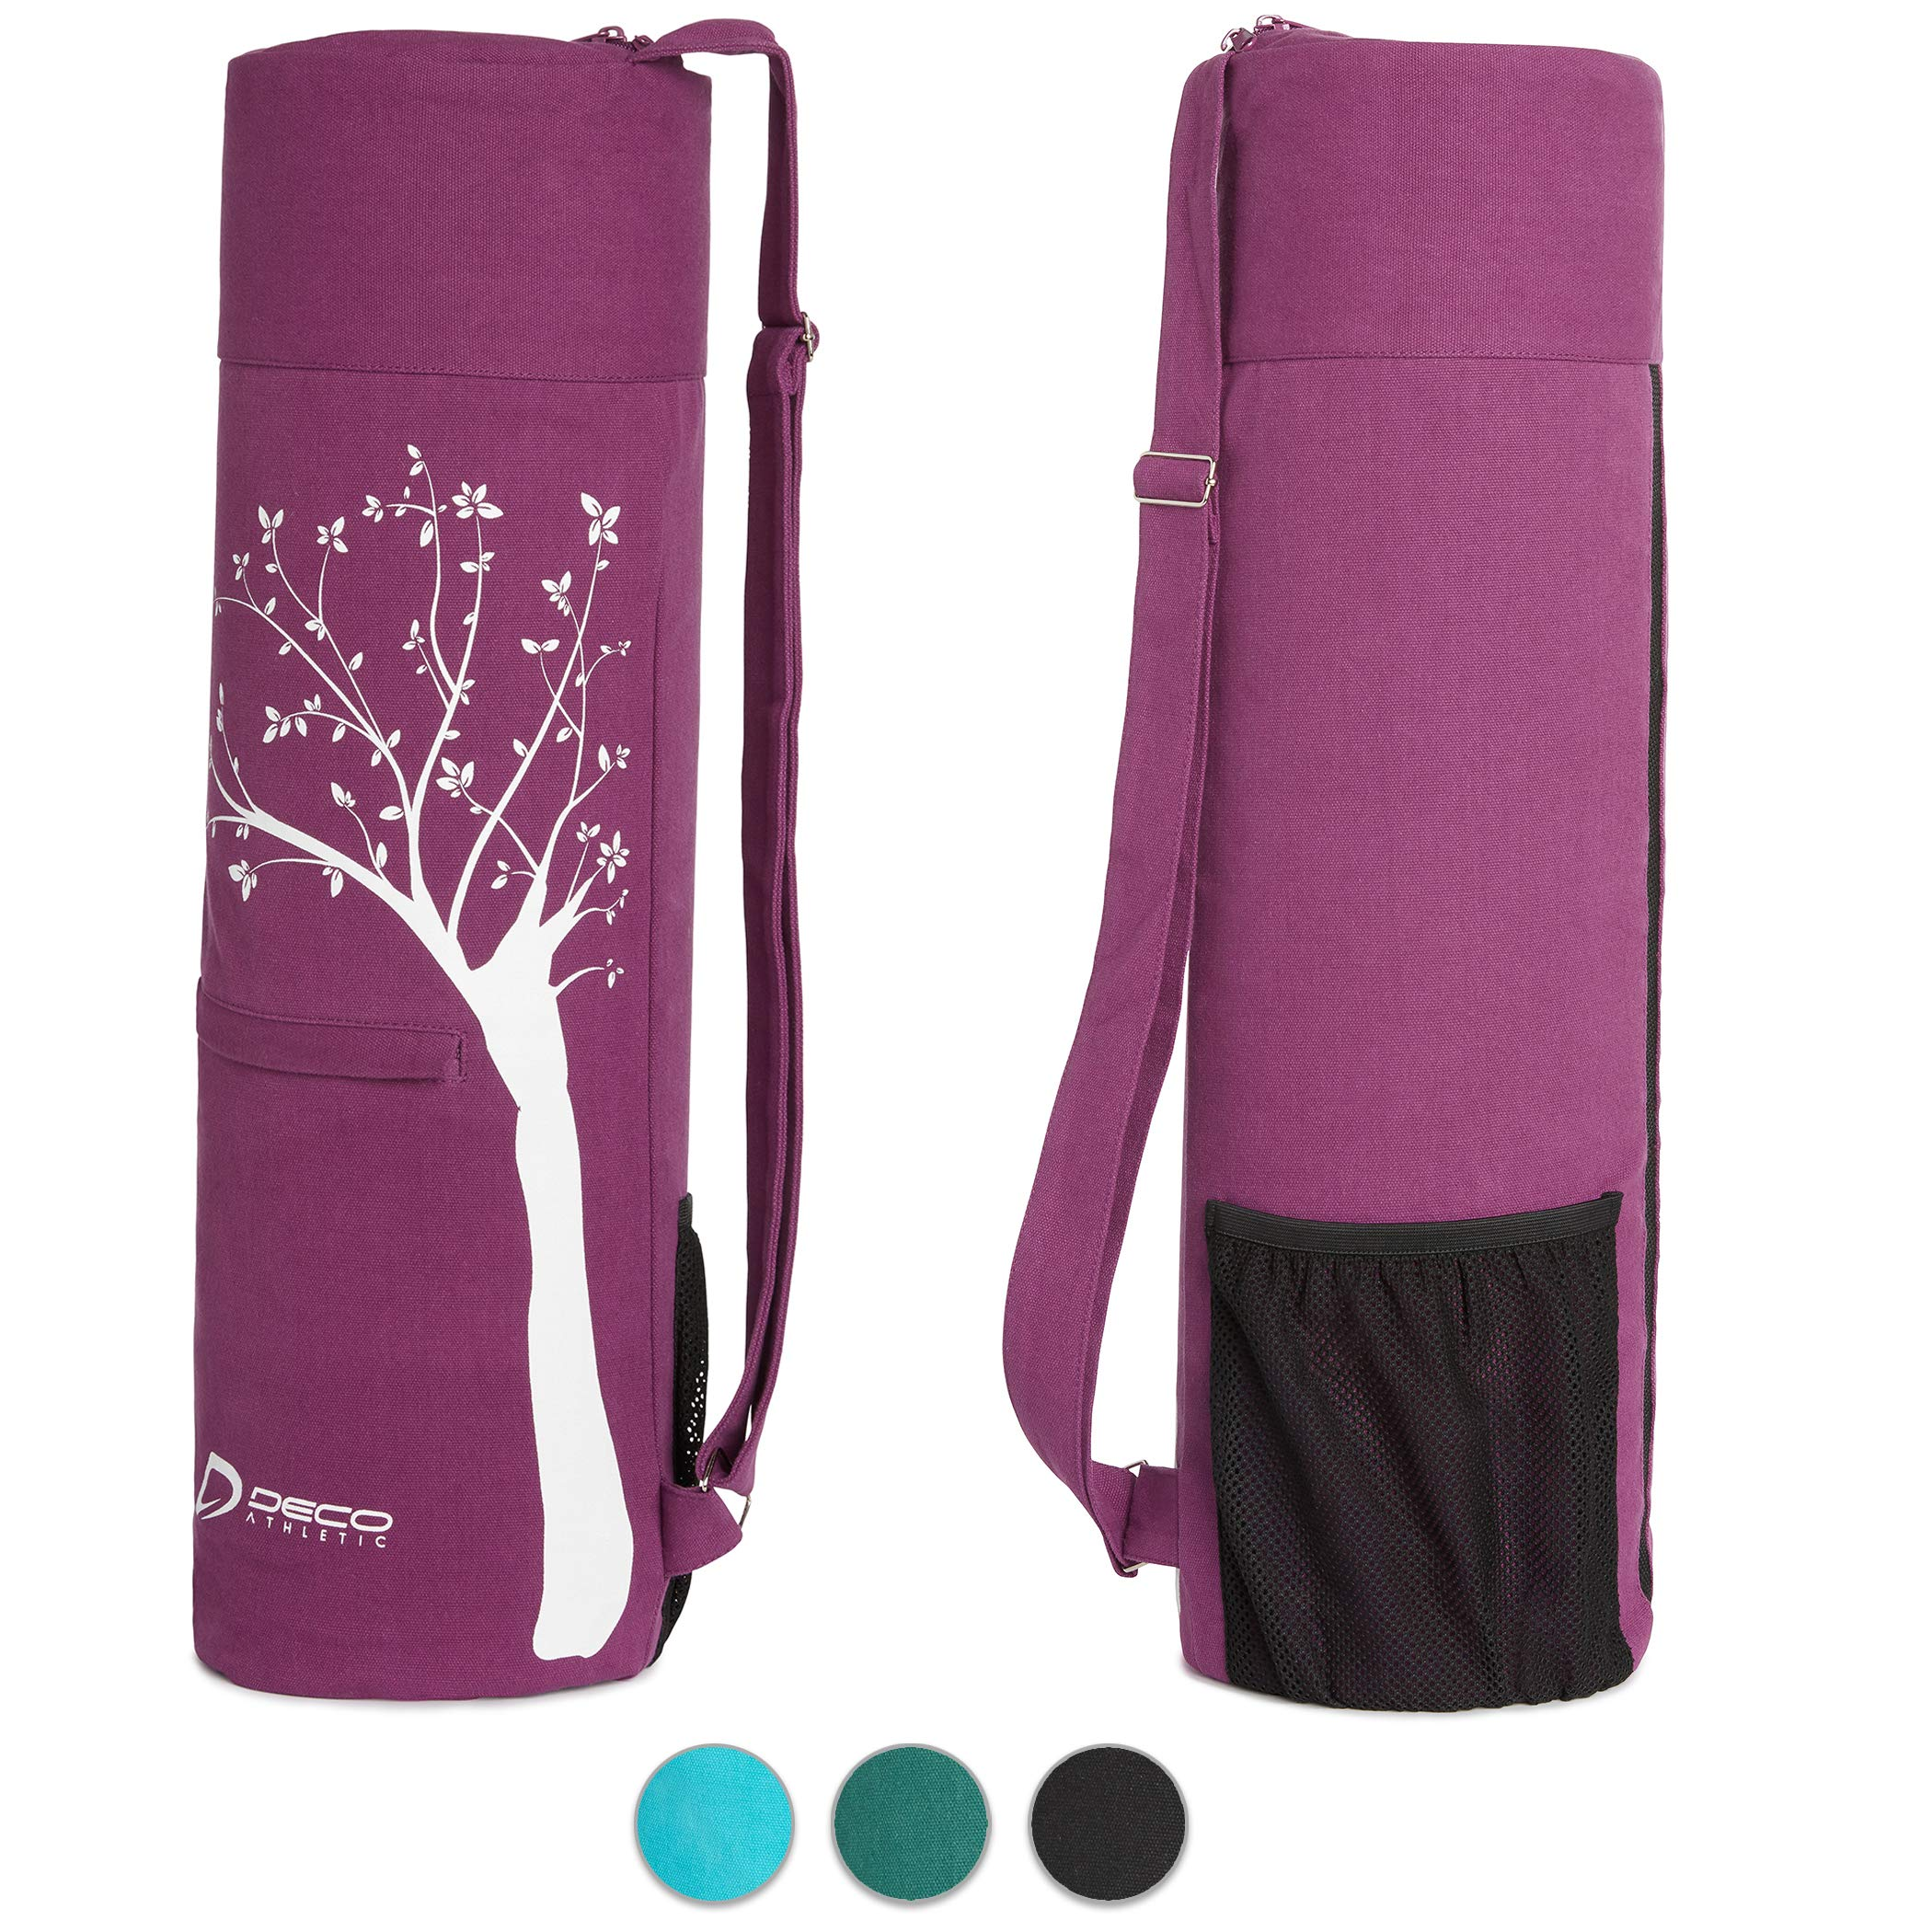 Deco Athletic Purple Yoga Mat Bag, fits up to 25 inch mat, one Large Zipped Interior Pocket, one Large mesh Exterior Pocket, Room for Yoga Blanket and Yoga Towel